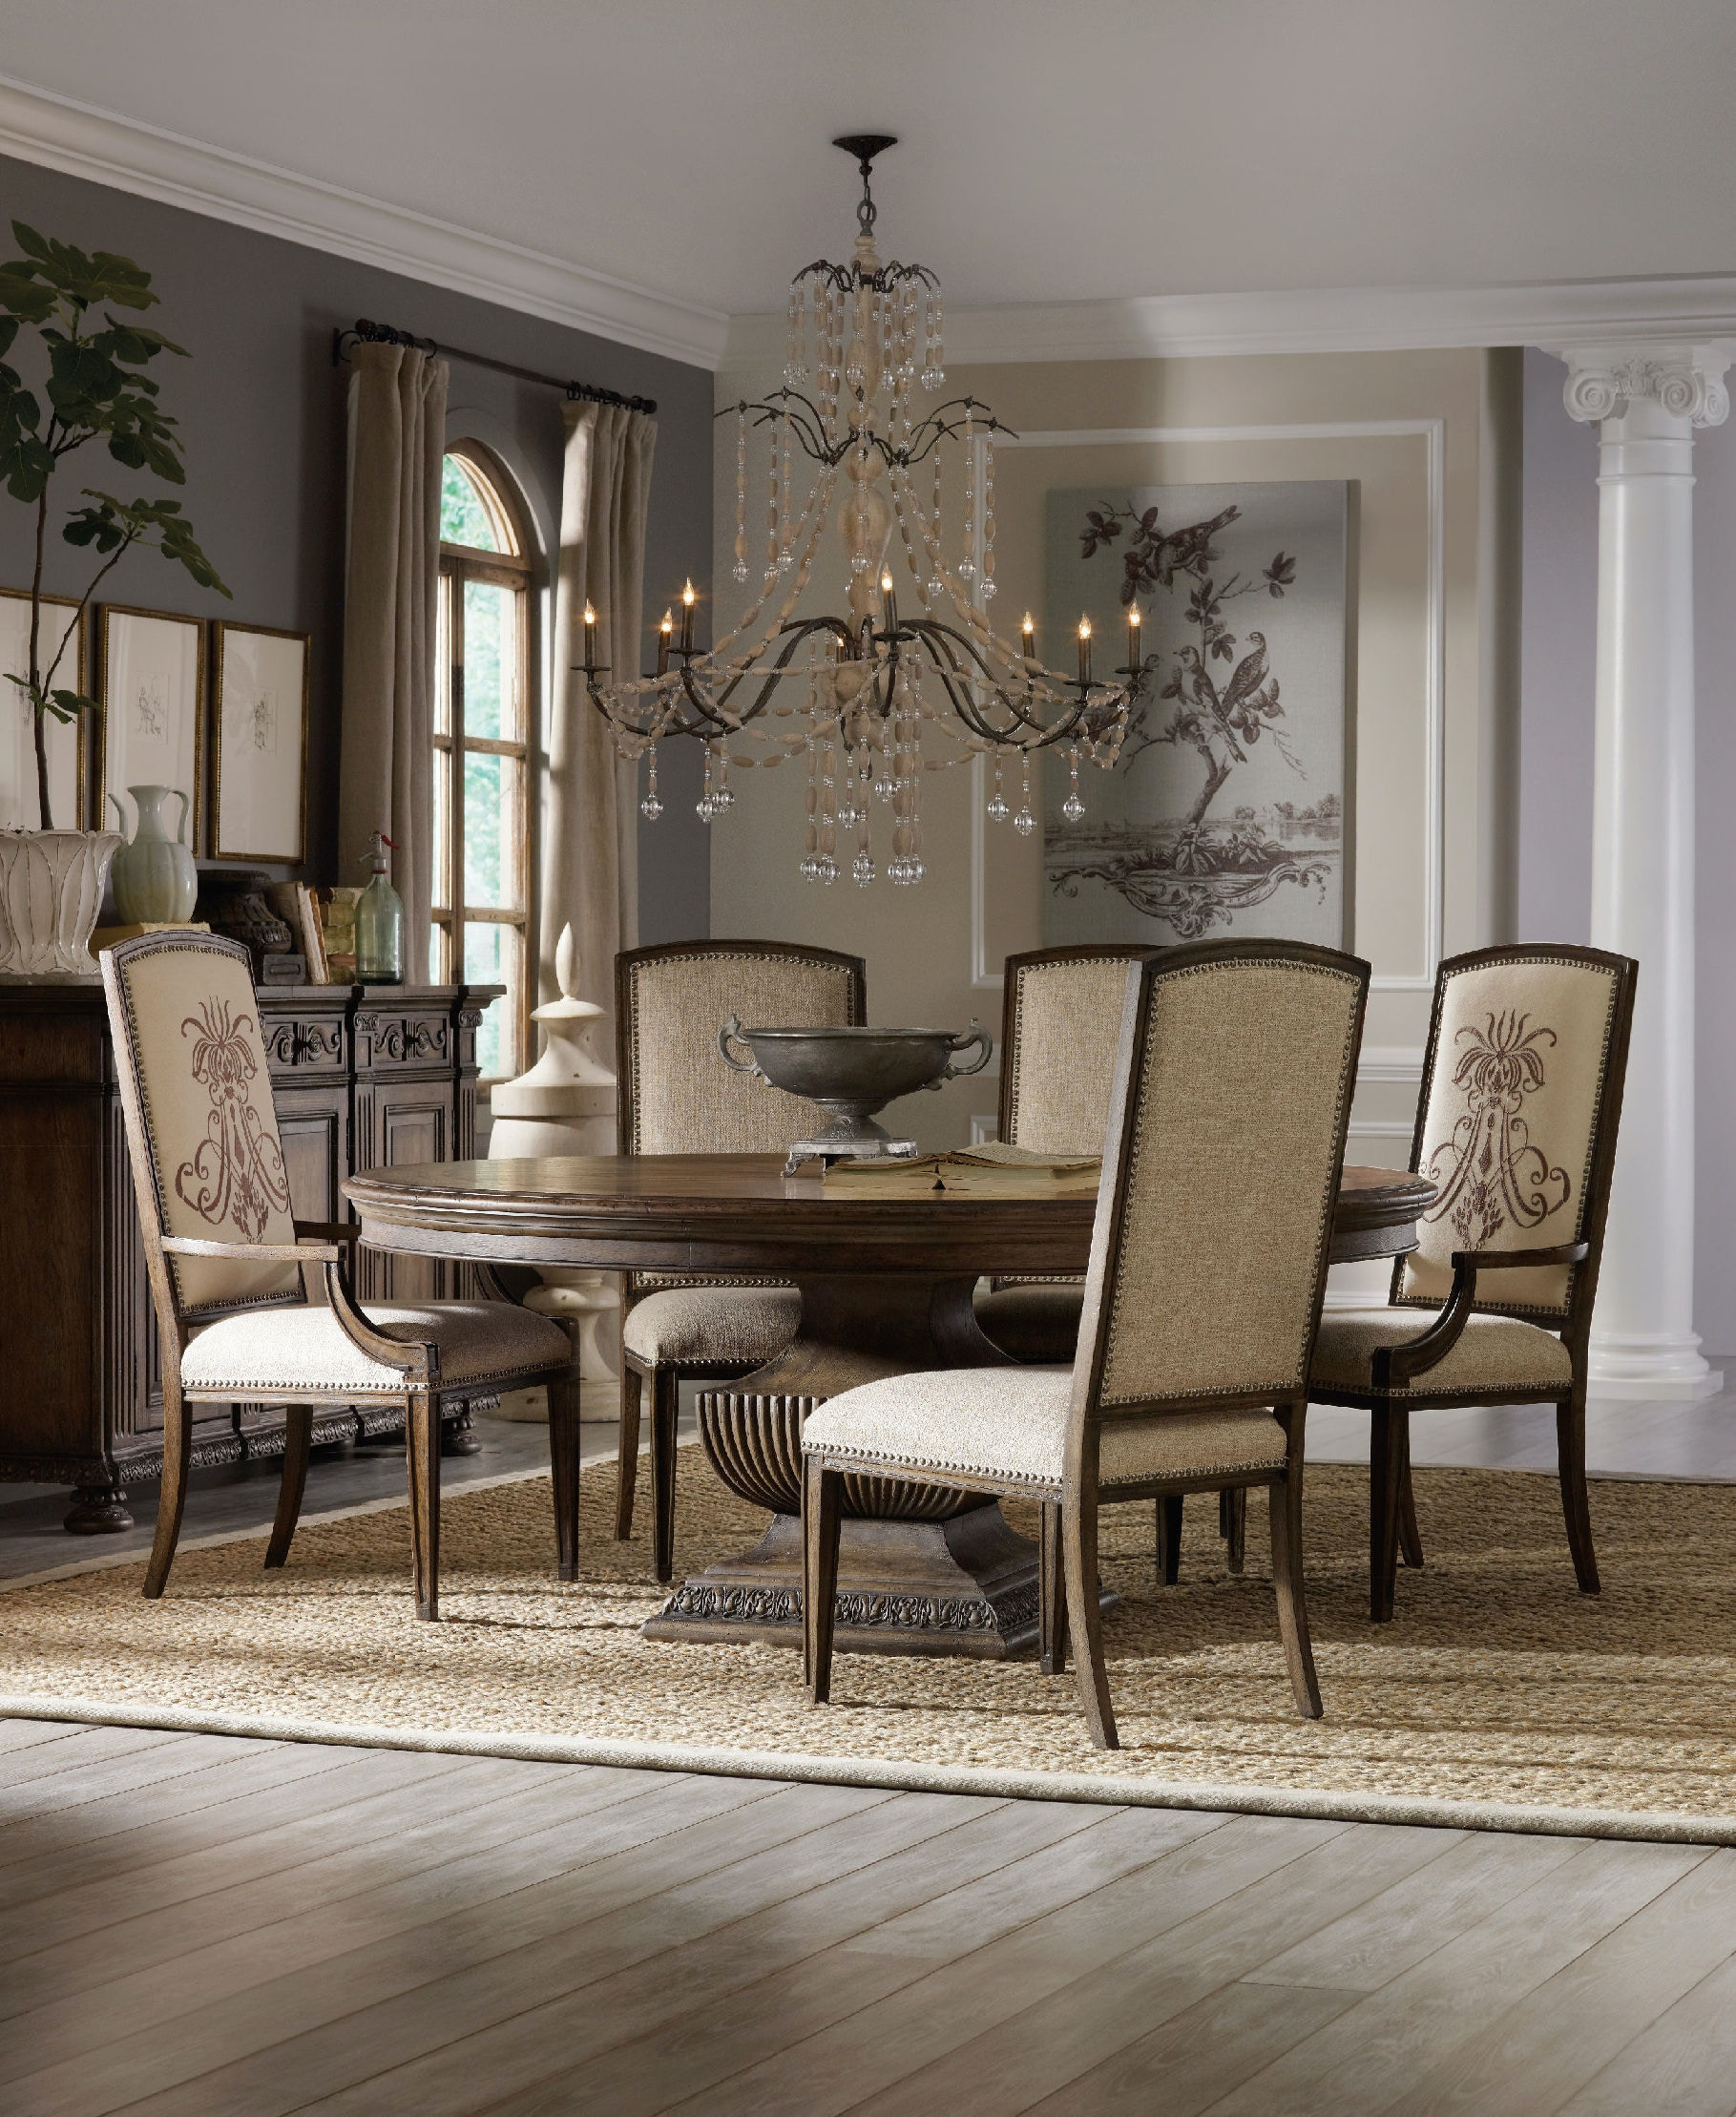 Hooker Furniture Dining Room Rhapsody Insignia Arm Chair  : 507075213room from www.whitleygalleries.com size 1024 x 768 jpeg 71kB